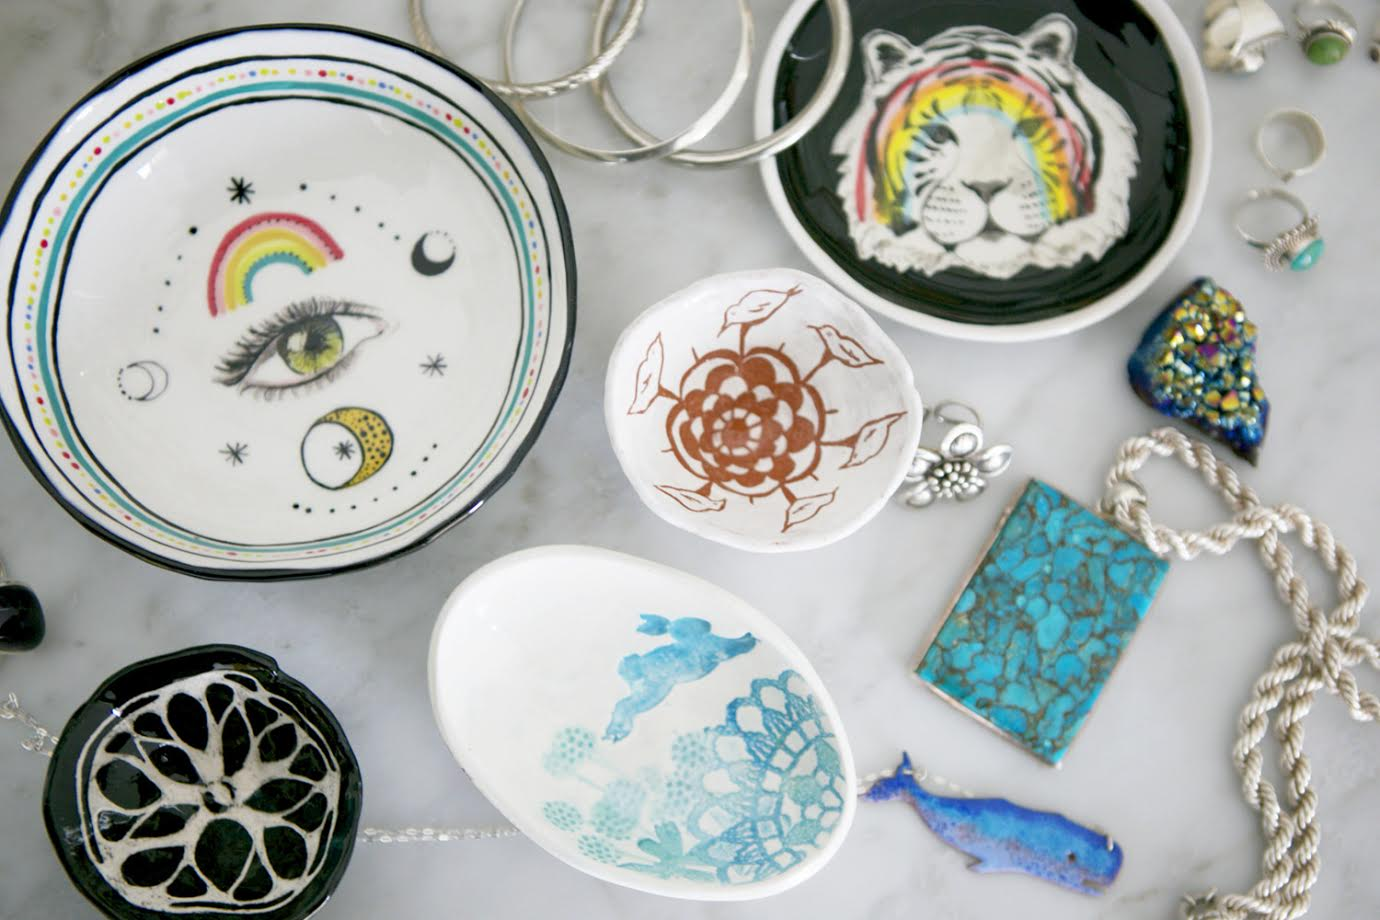 Trinkets A Creative Home..with Artist Michelle Fleur in Perth, Australia // Surelysimple.com